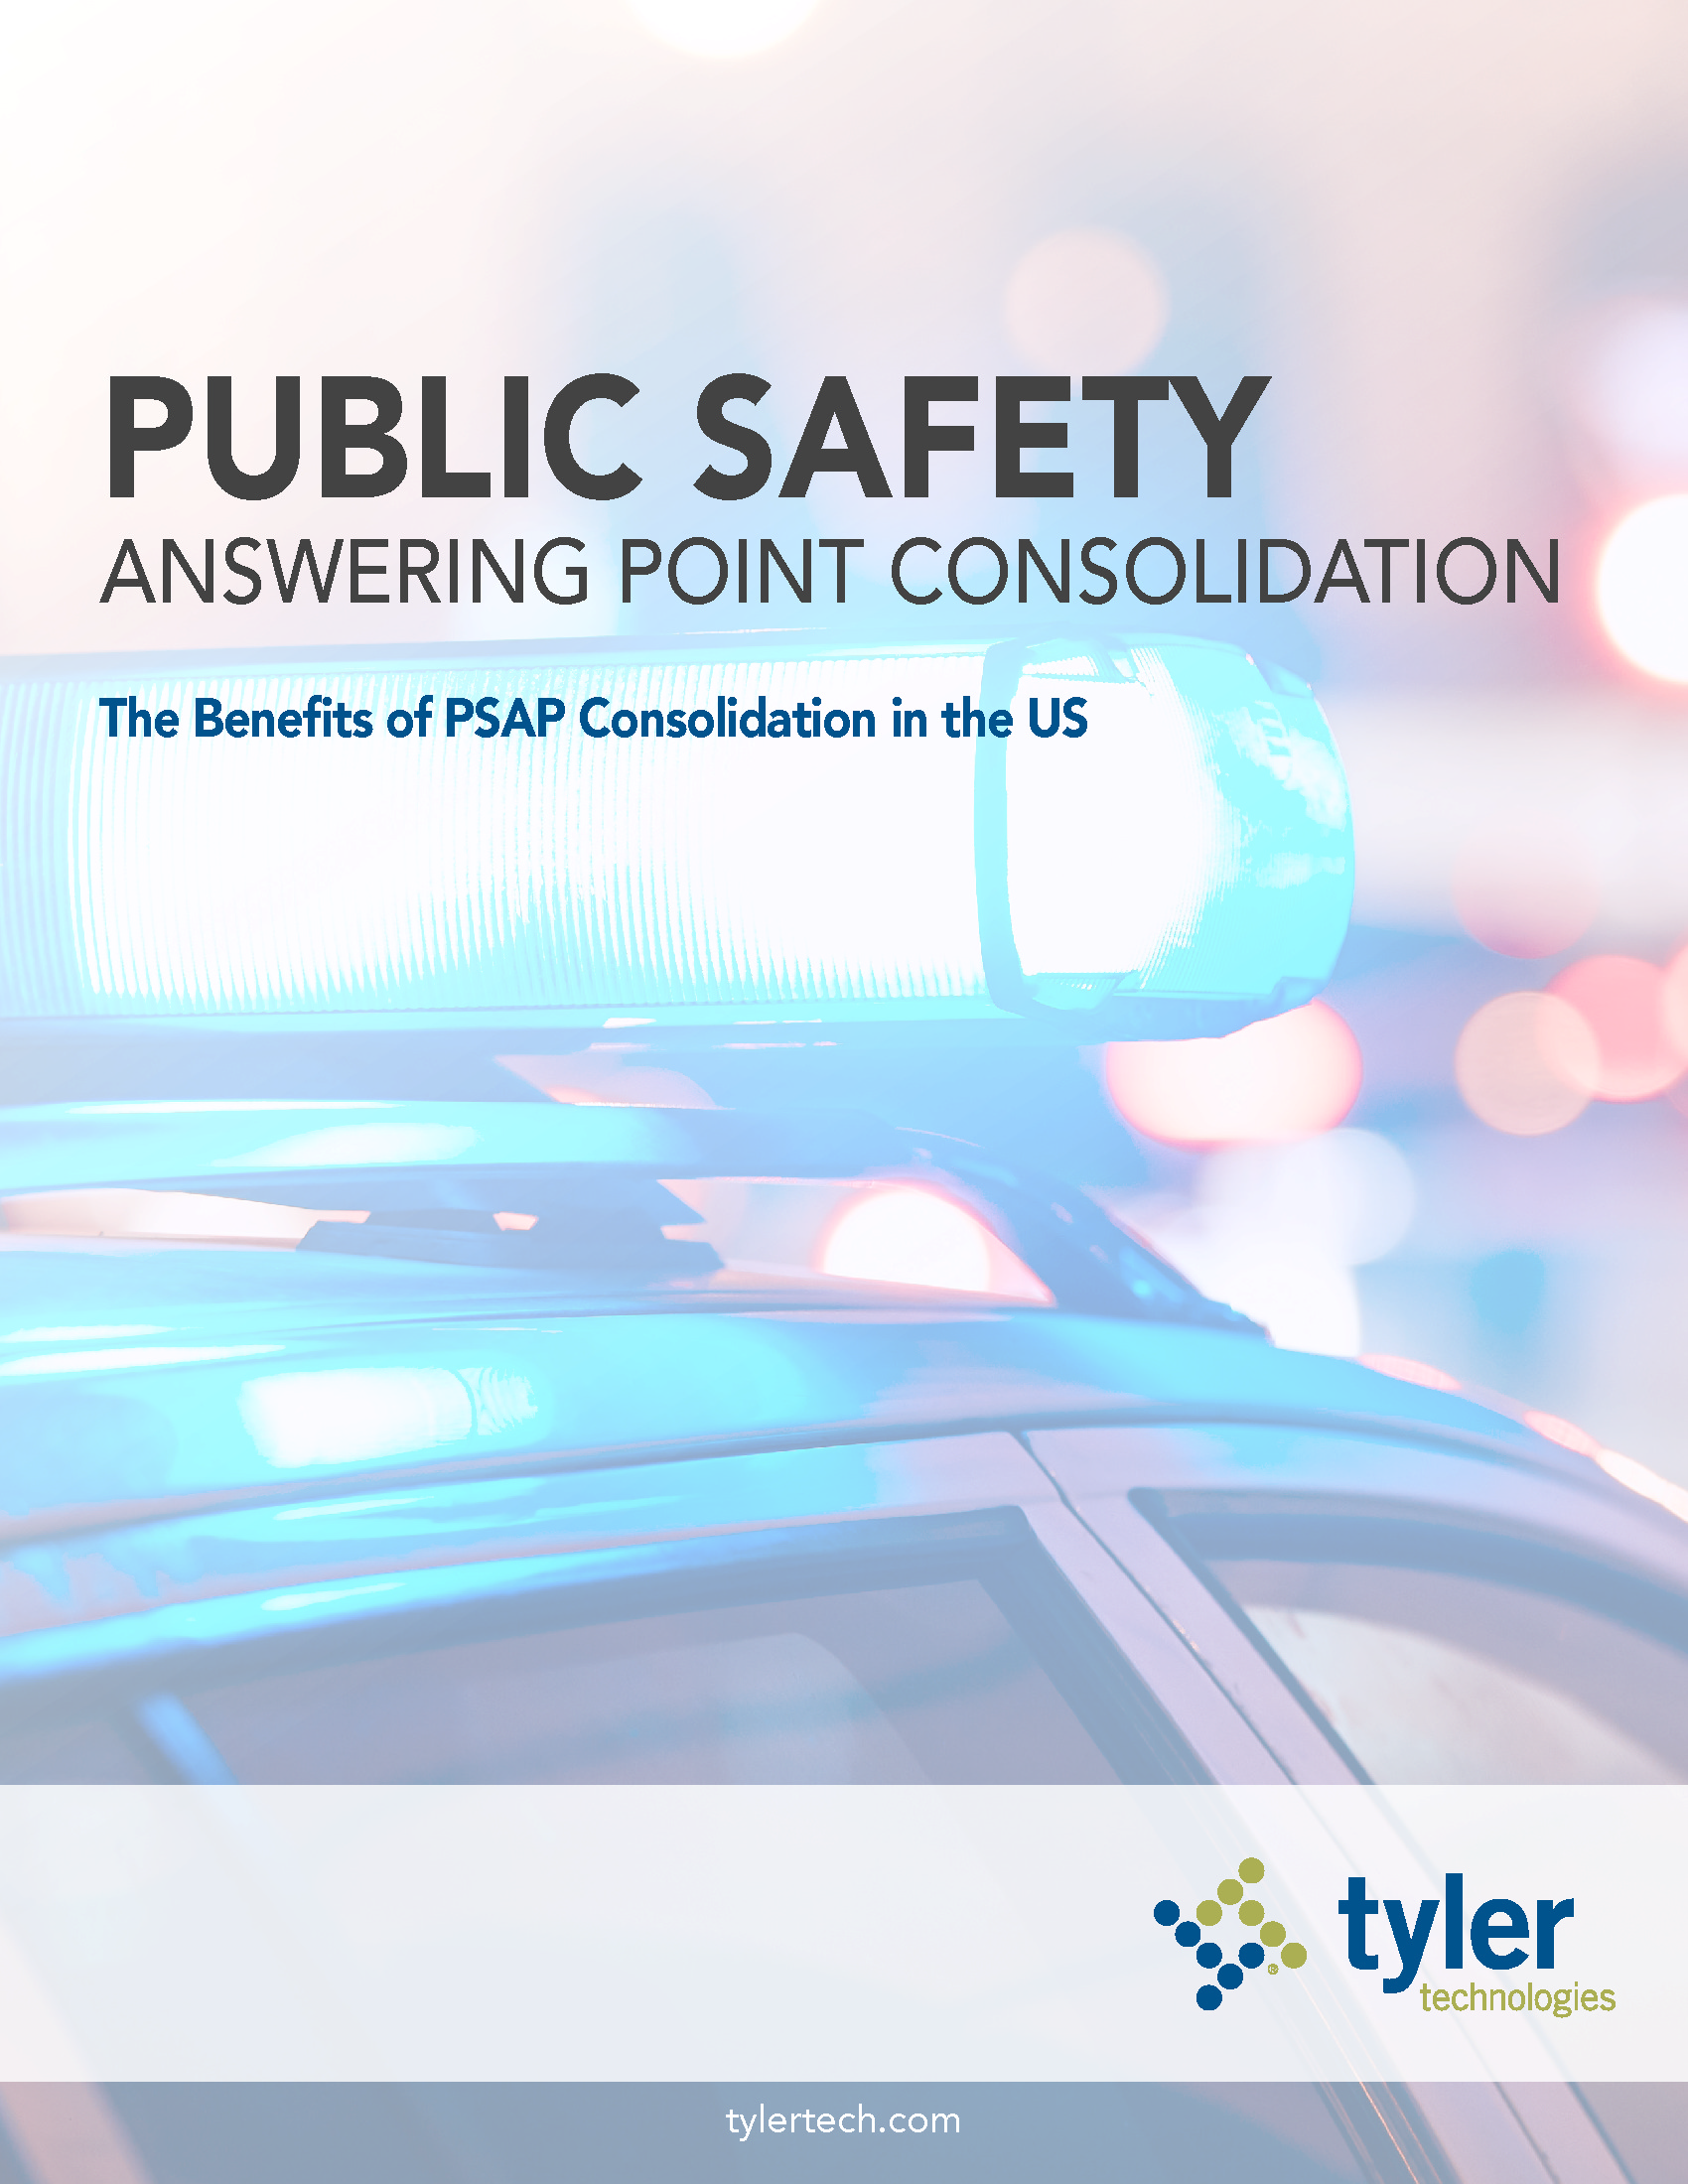 GOV - Tyler - 2018 Public Safety Channel - PSAP Consolidation